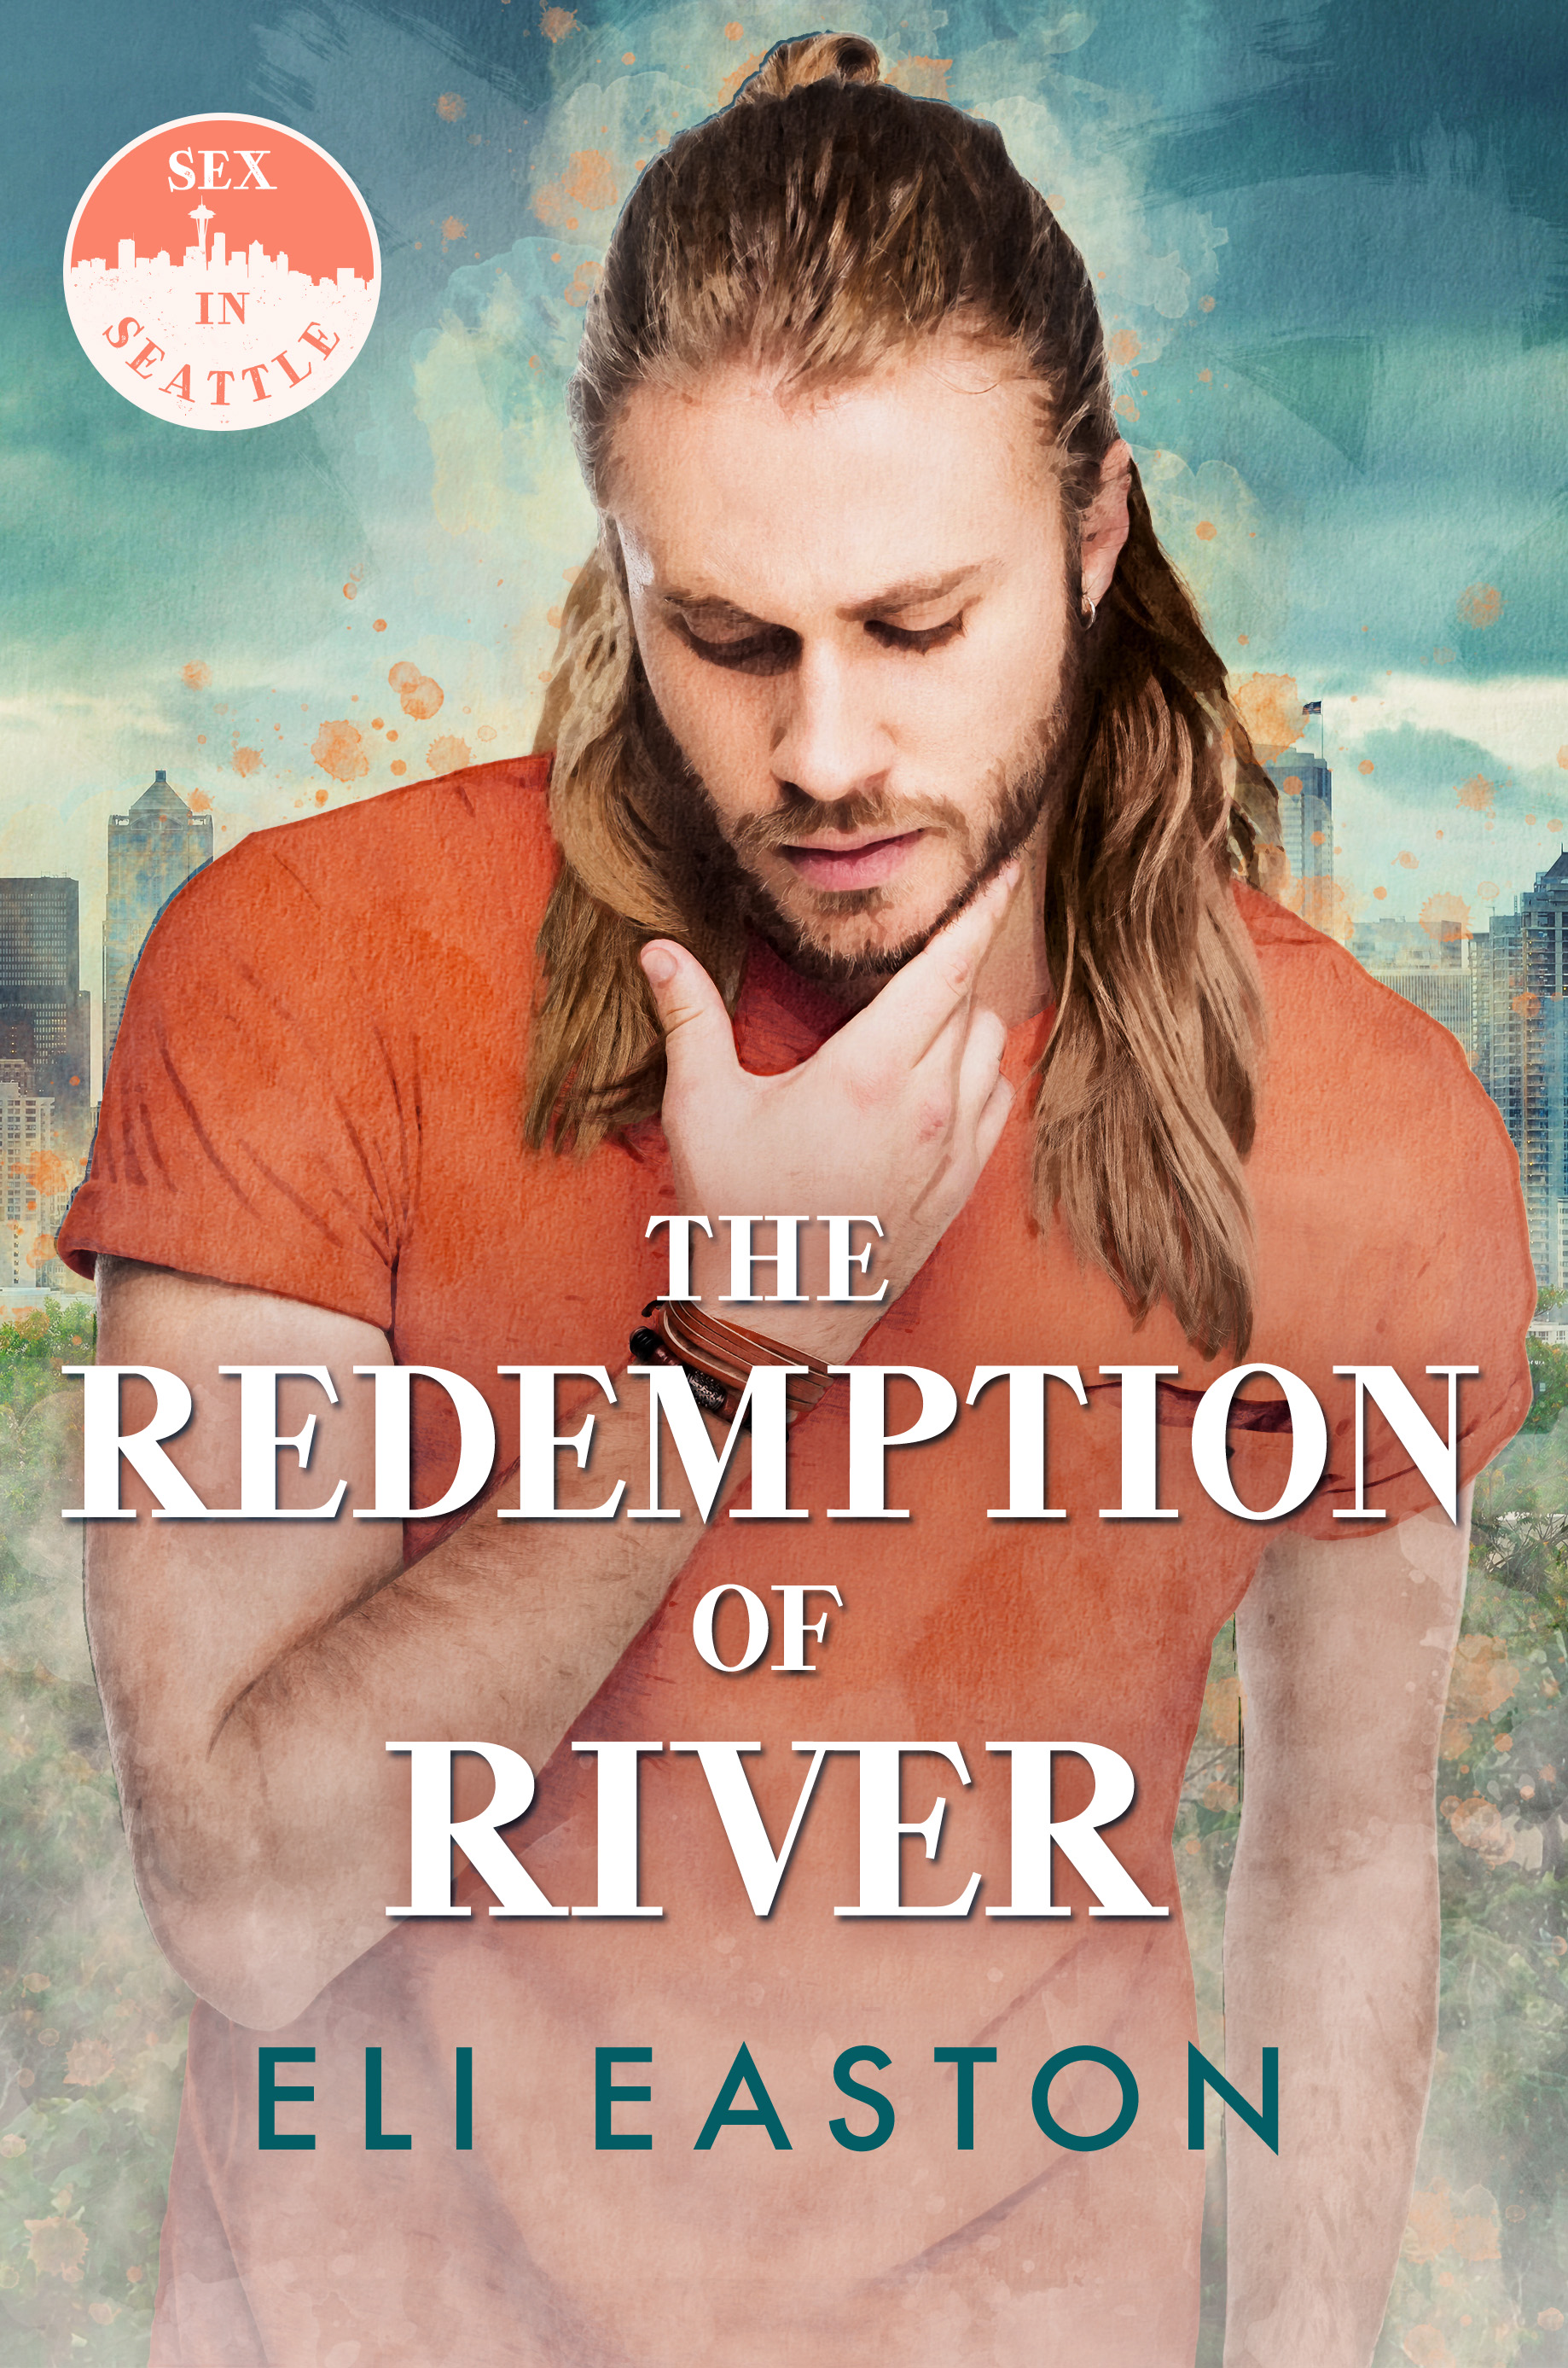 The Redemption of River (Sex in Seattle, #4)